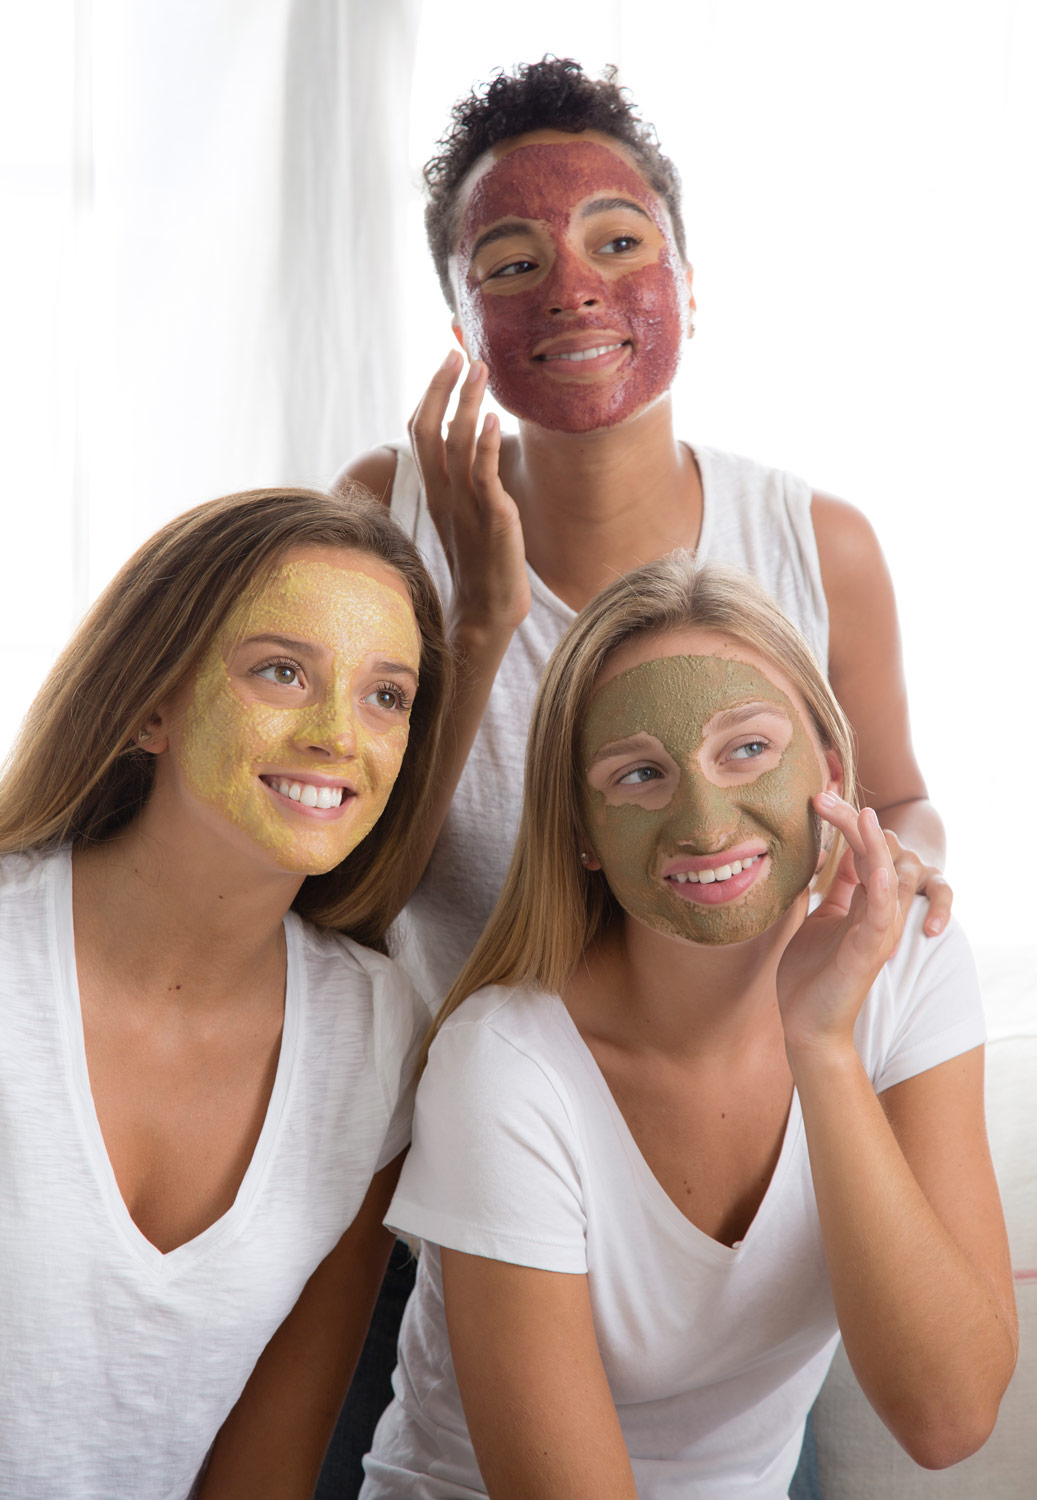 Autumn Facial, sea and tea facial, bee inspired facial each on a different model for natural skin repair